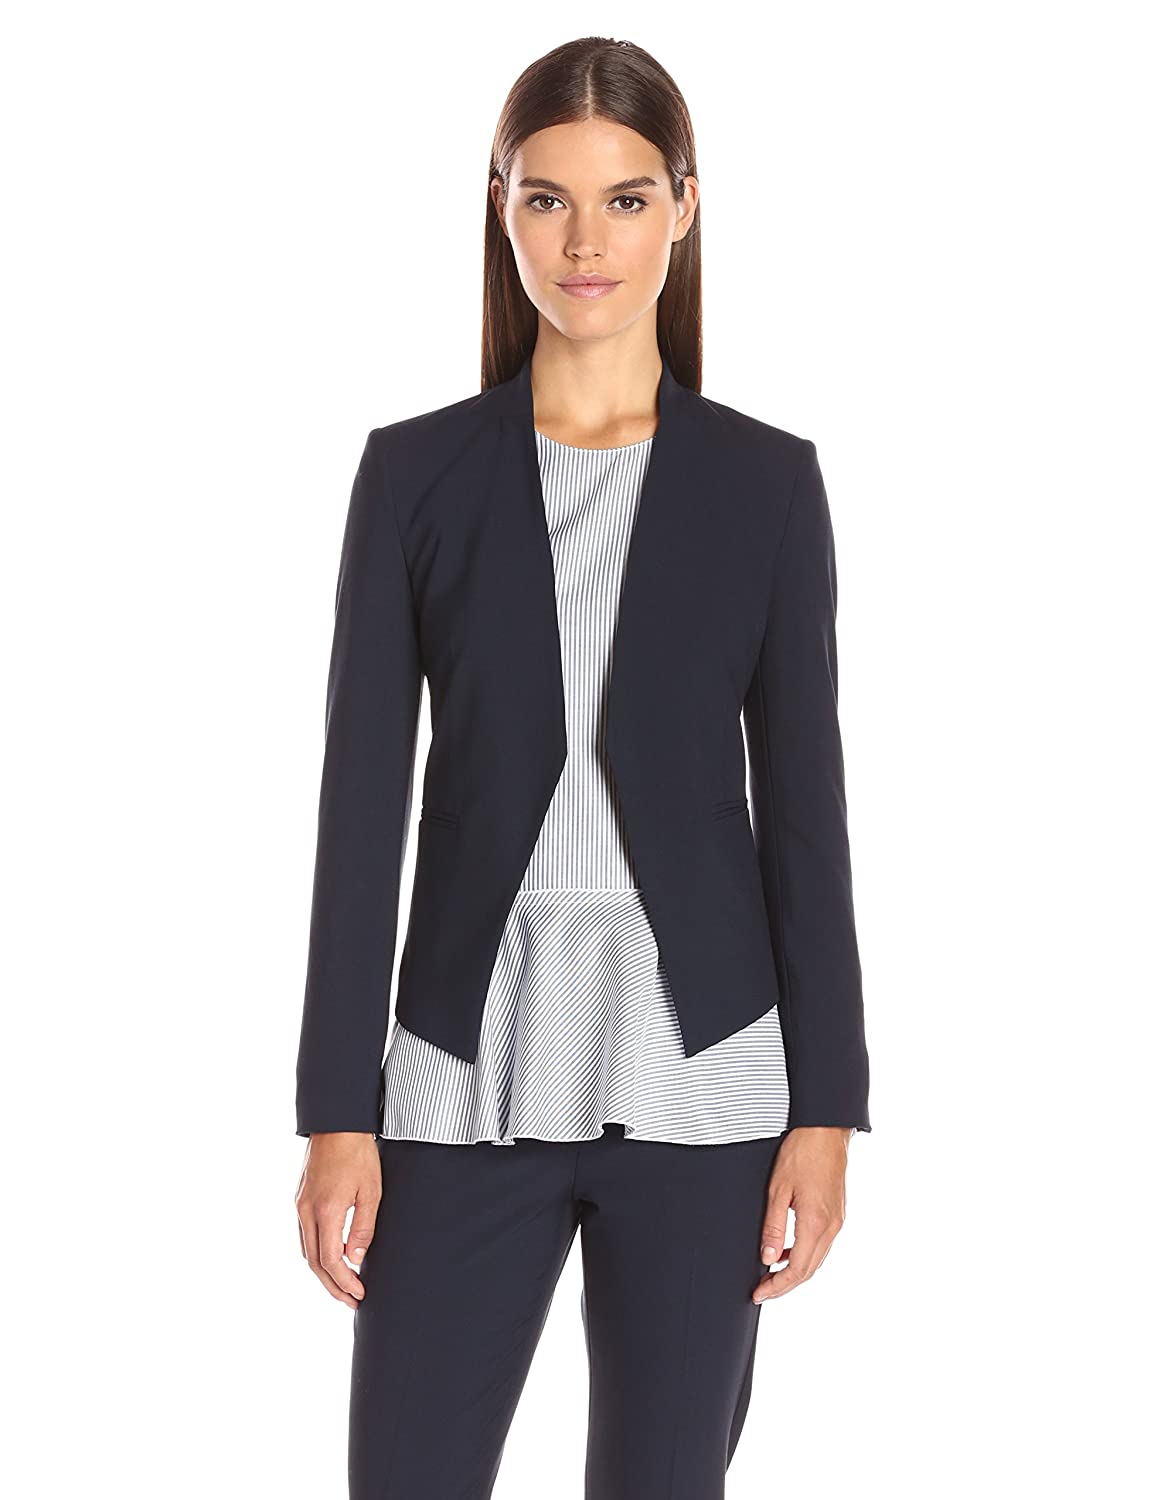 Deep Navy Theory Women's Lanai Edition 4 Jacket